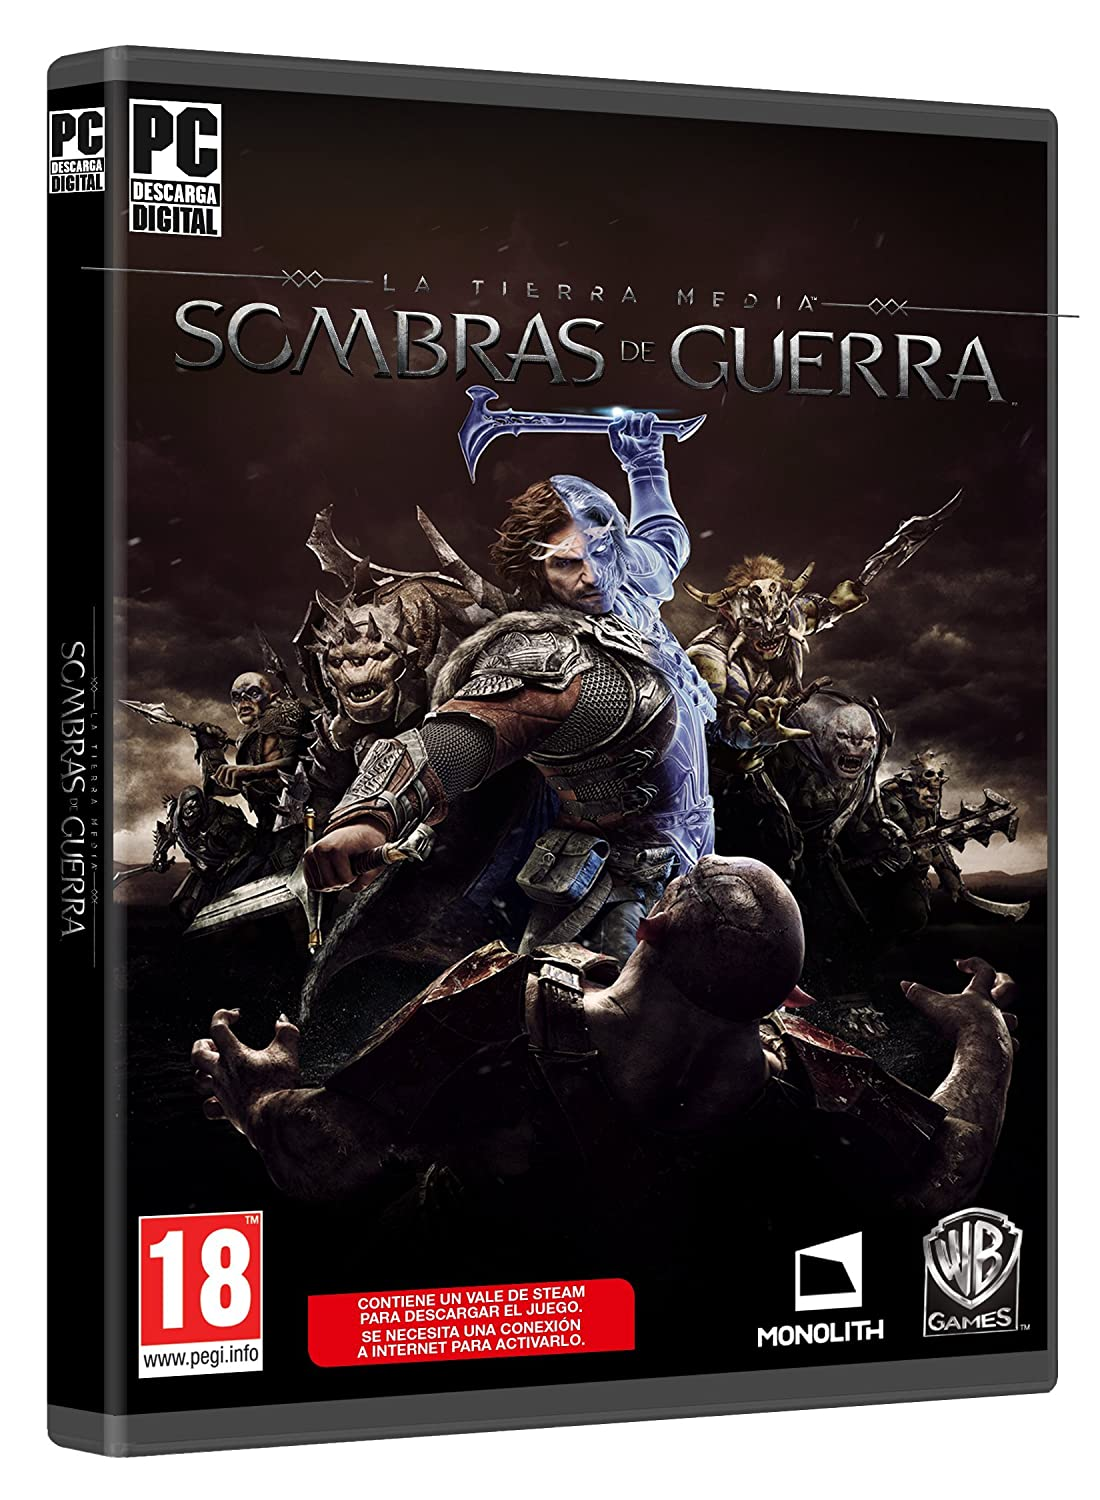 La Tierra-Media: Sombras De Guerra: PC: Amazon.es: Videojuegos